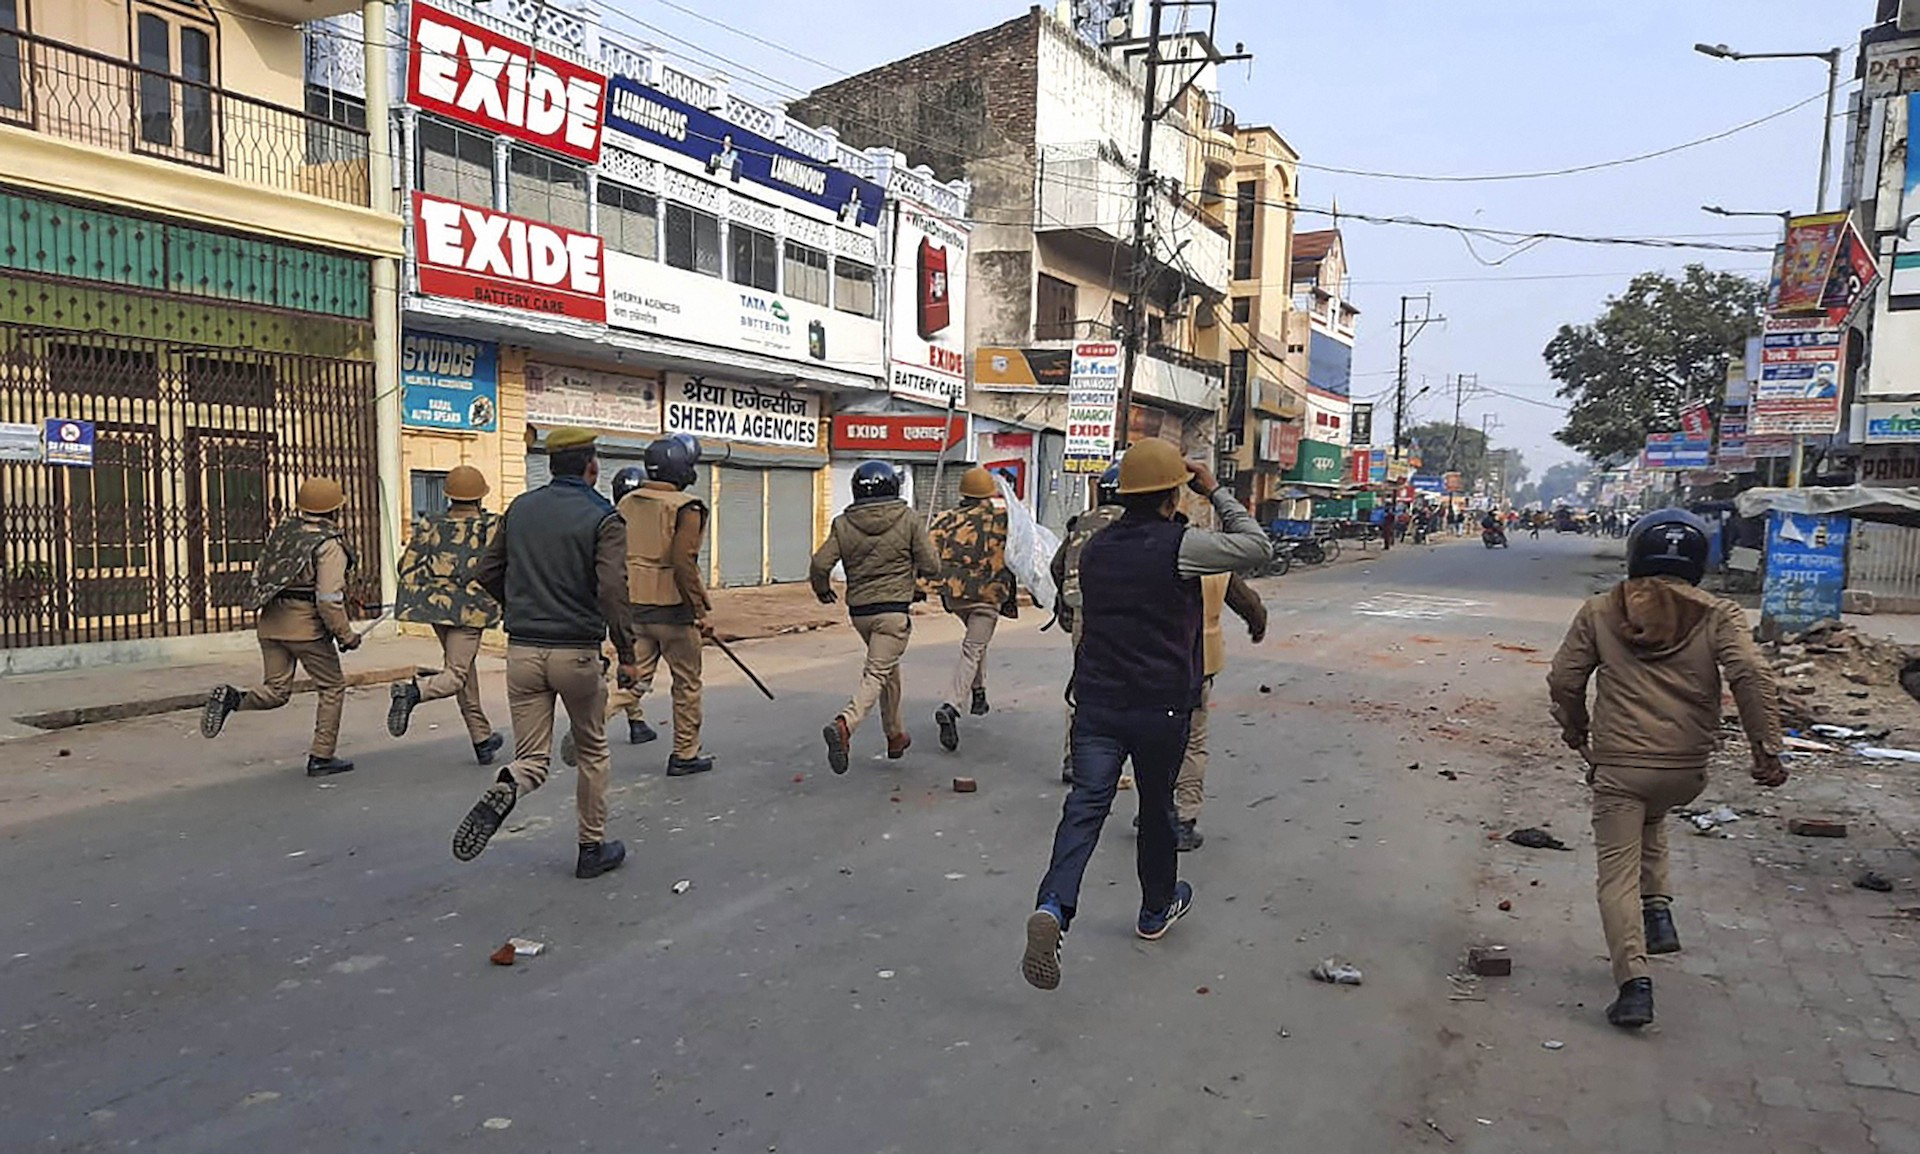 Police clash with protestors during a rally against the Citizenship Amendment Act in Bahraich district of Uttar Pradesh on Friday, December 20, 2019.